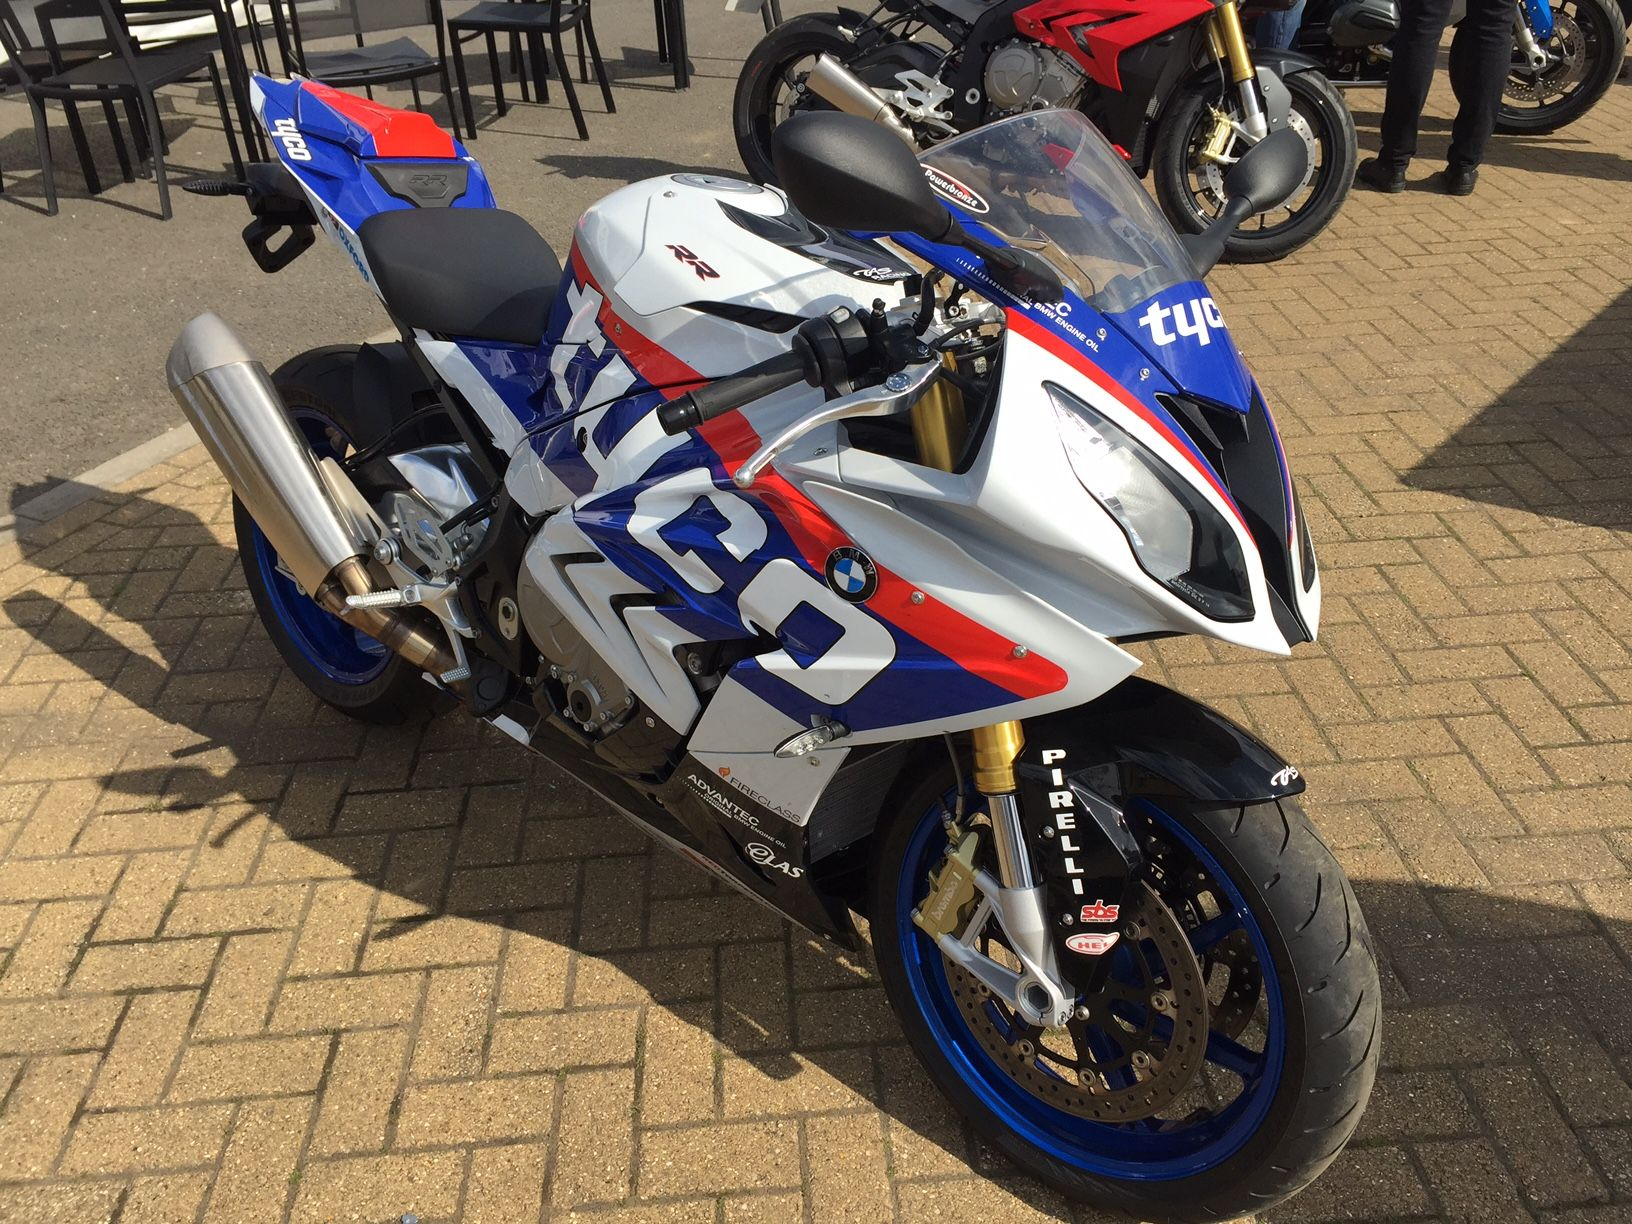 BMW S1000RR motorcycle with Tyco replica race paintwork